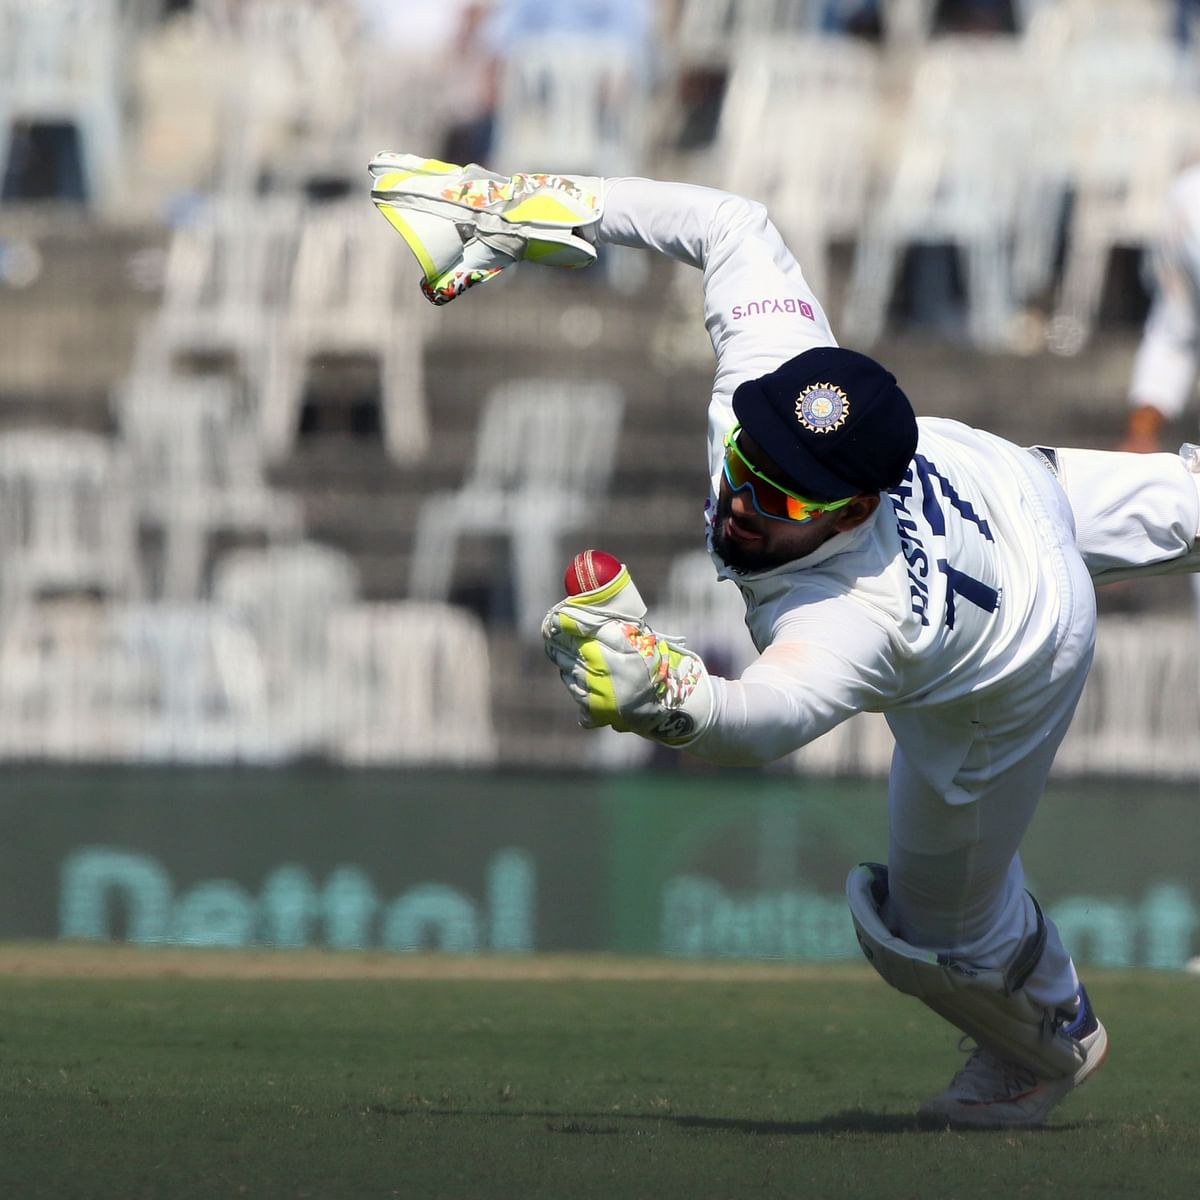 Ind vs Eng, 2nd Test: Should embrace how good Rishabh is rather than seeing negatives: Ashwin